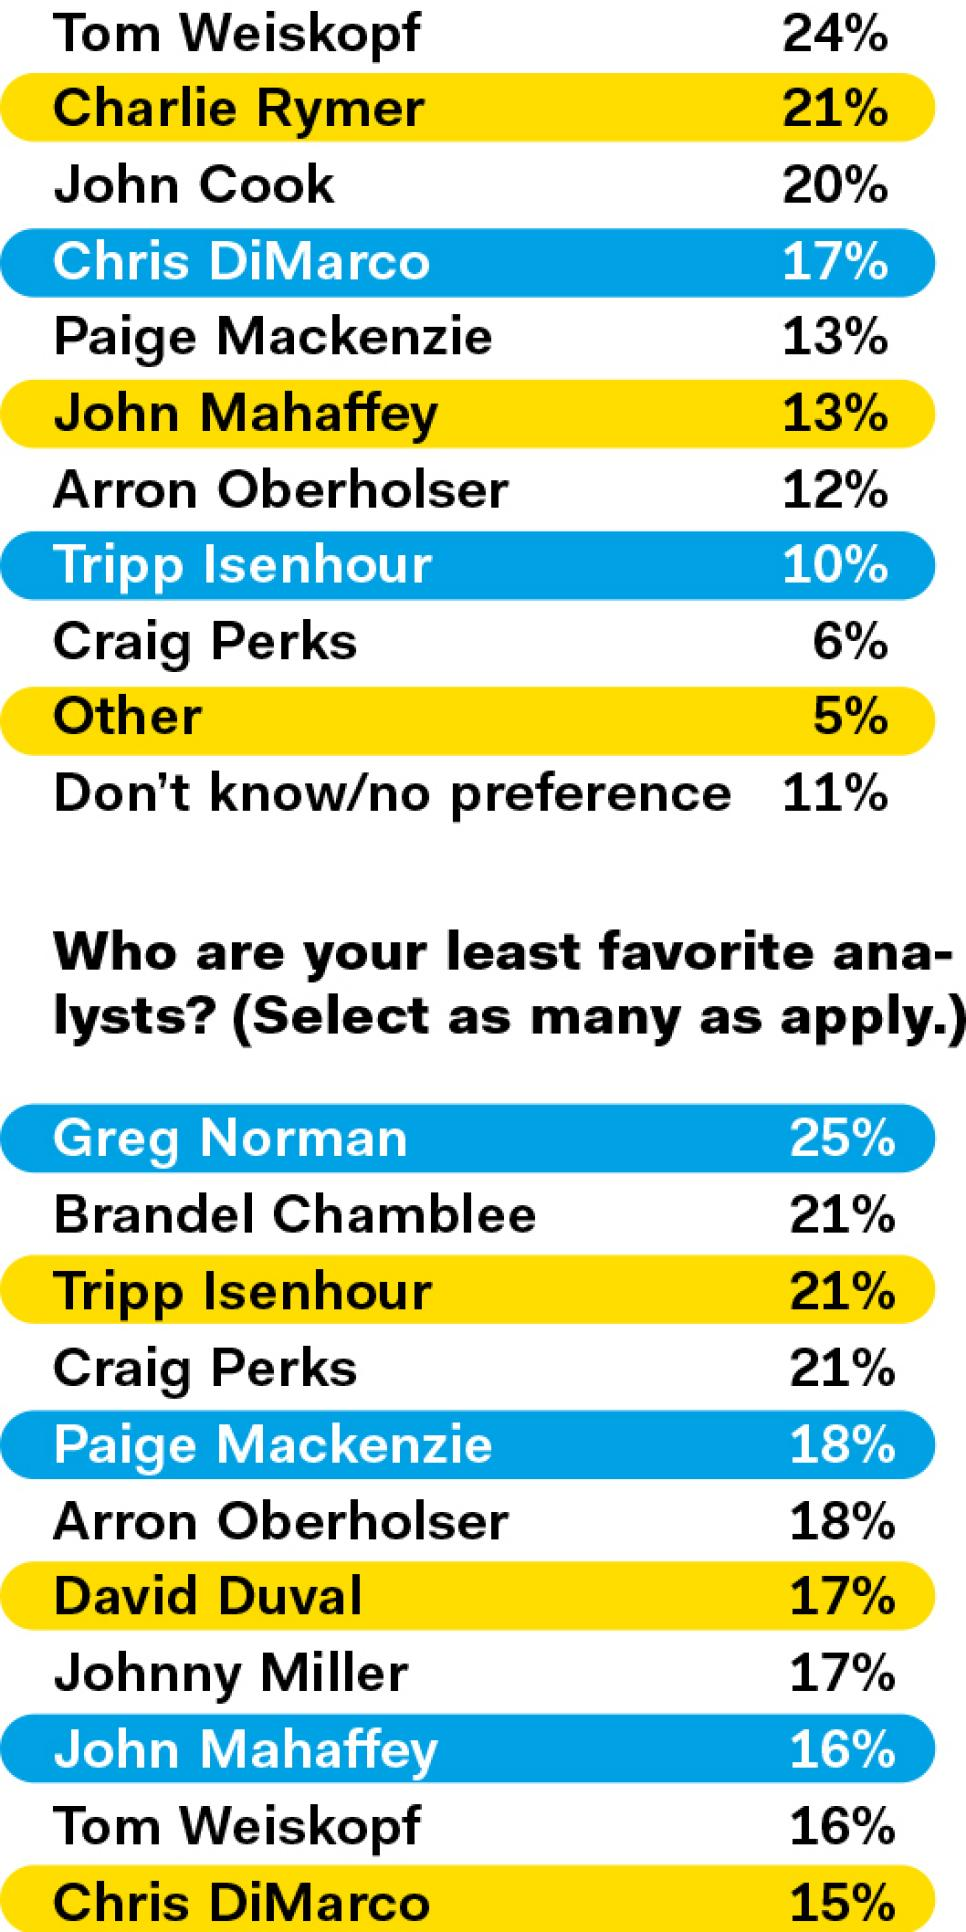 TV-Survey-favorite-and-least-favorite-analysts.jpg